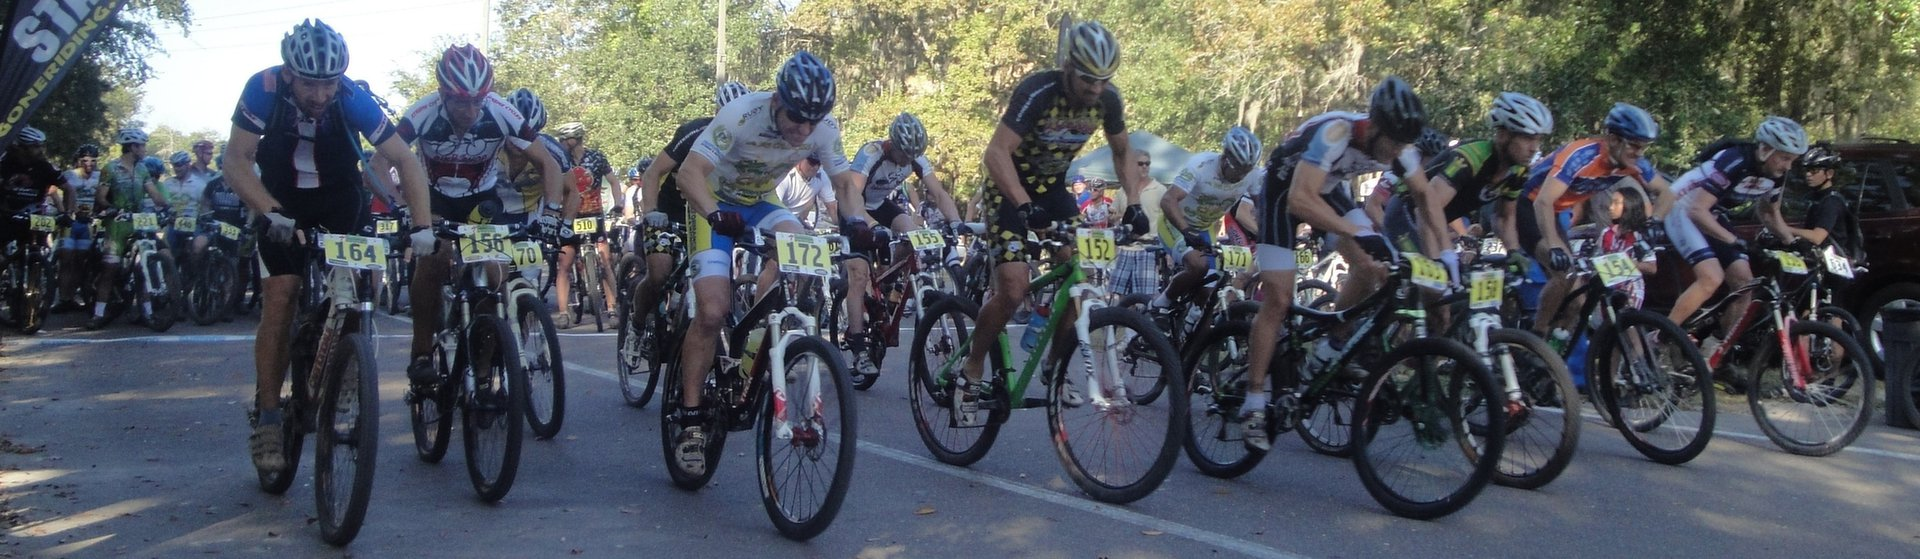 Florida Mountain Bike Racing